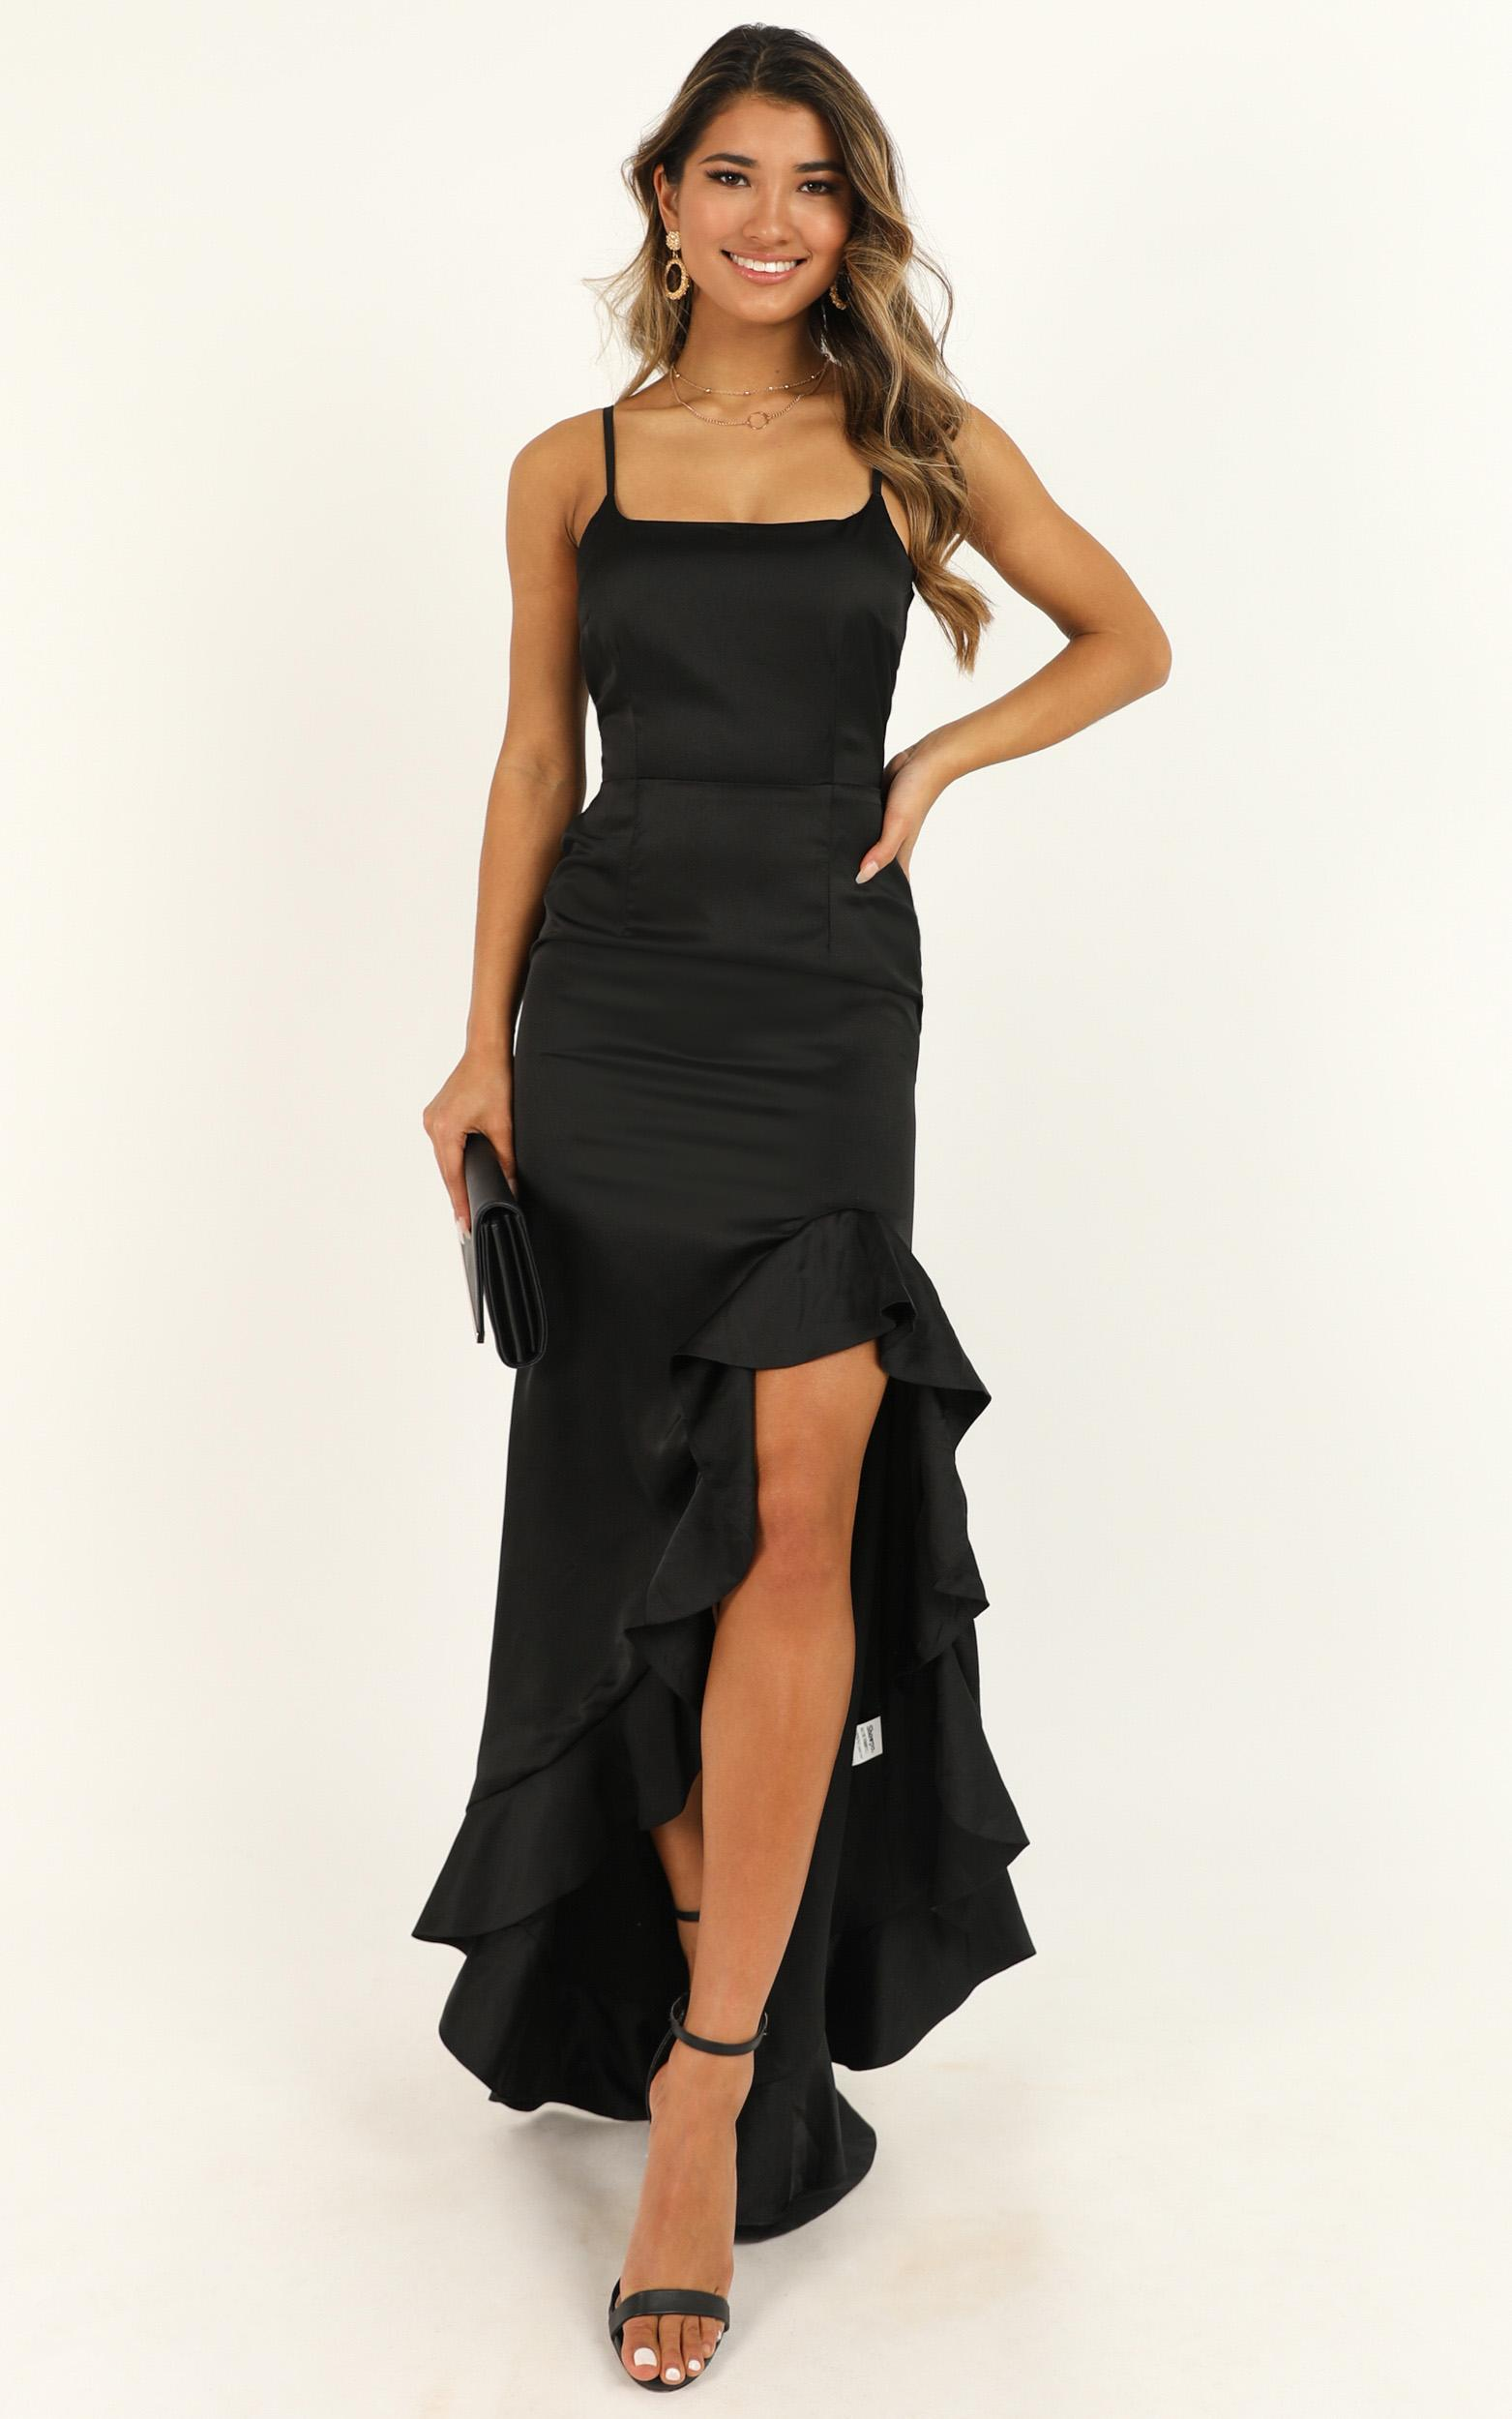 Find It In Your Heart Dress in black satin - 20 (XXXXL), Black, hi-res image number null